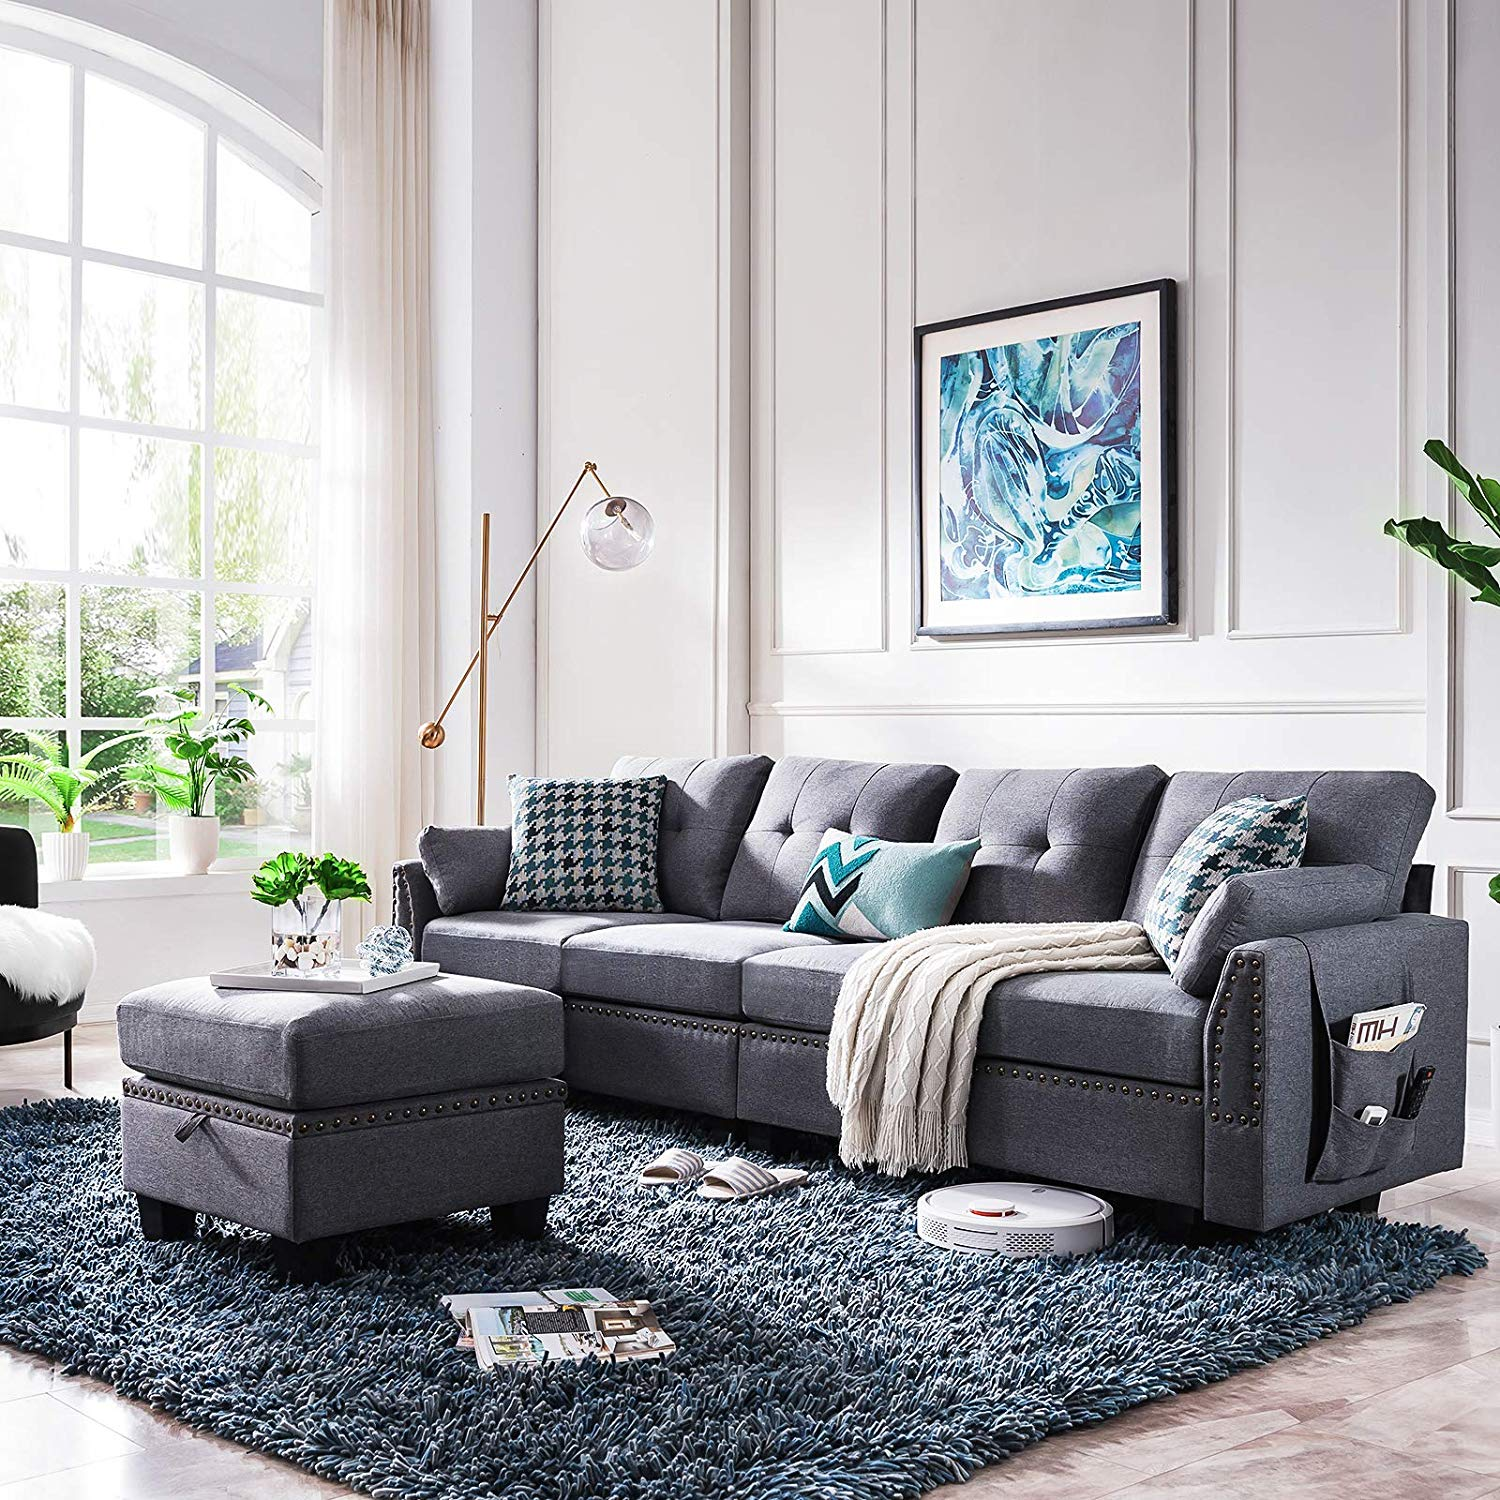 HONBAY Reversible Sectional Sofa Couch for Living Room L-Shape Sofa Couch 4-seat Sofas Sectional for Apartment Dark Grey